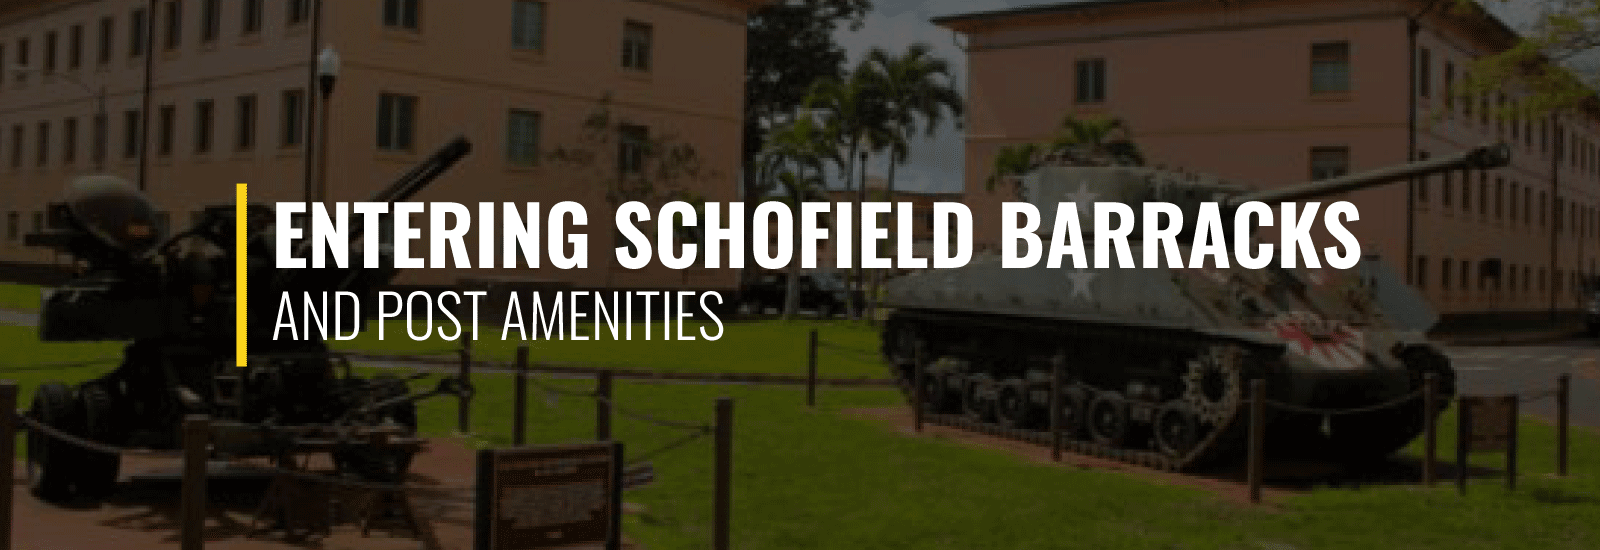 Entering Schofield Barracks and Post Amenities